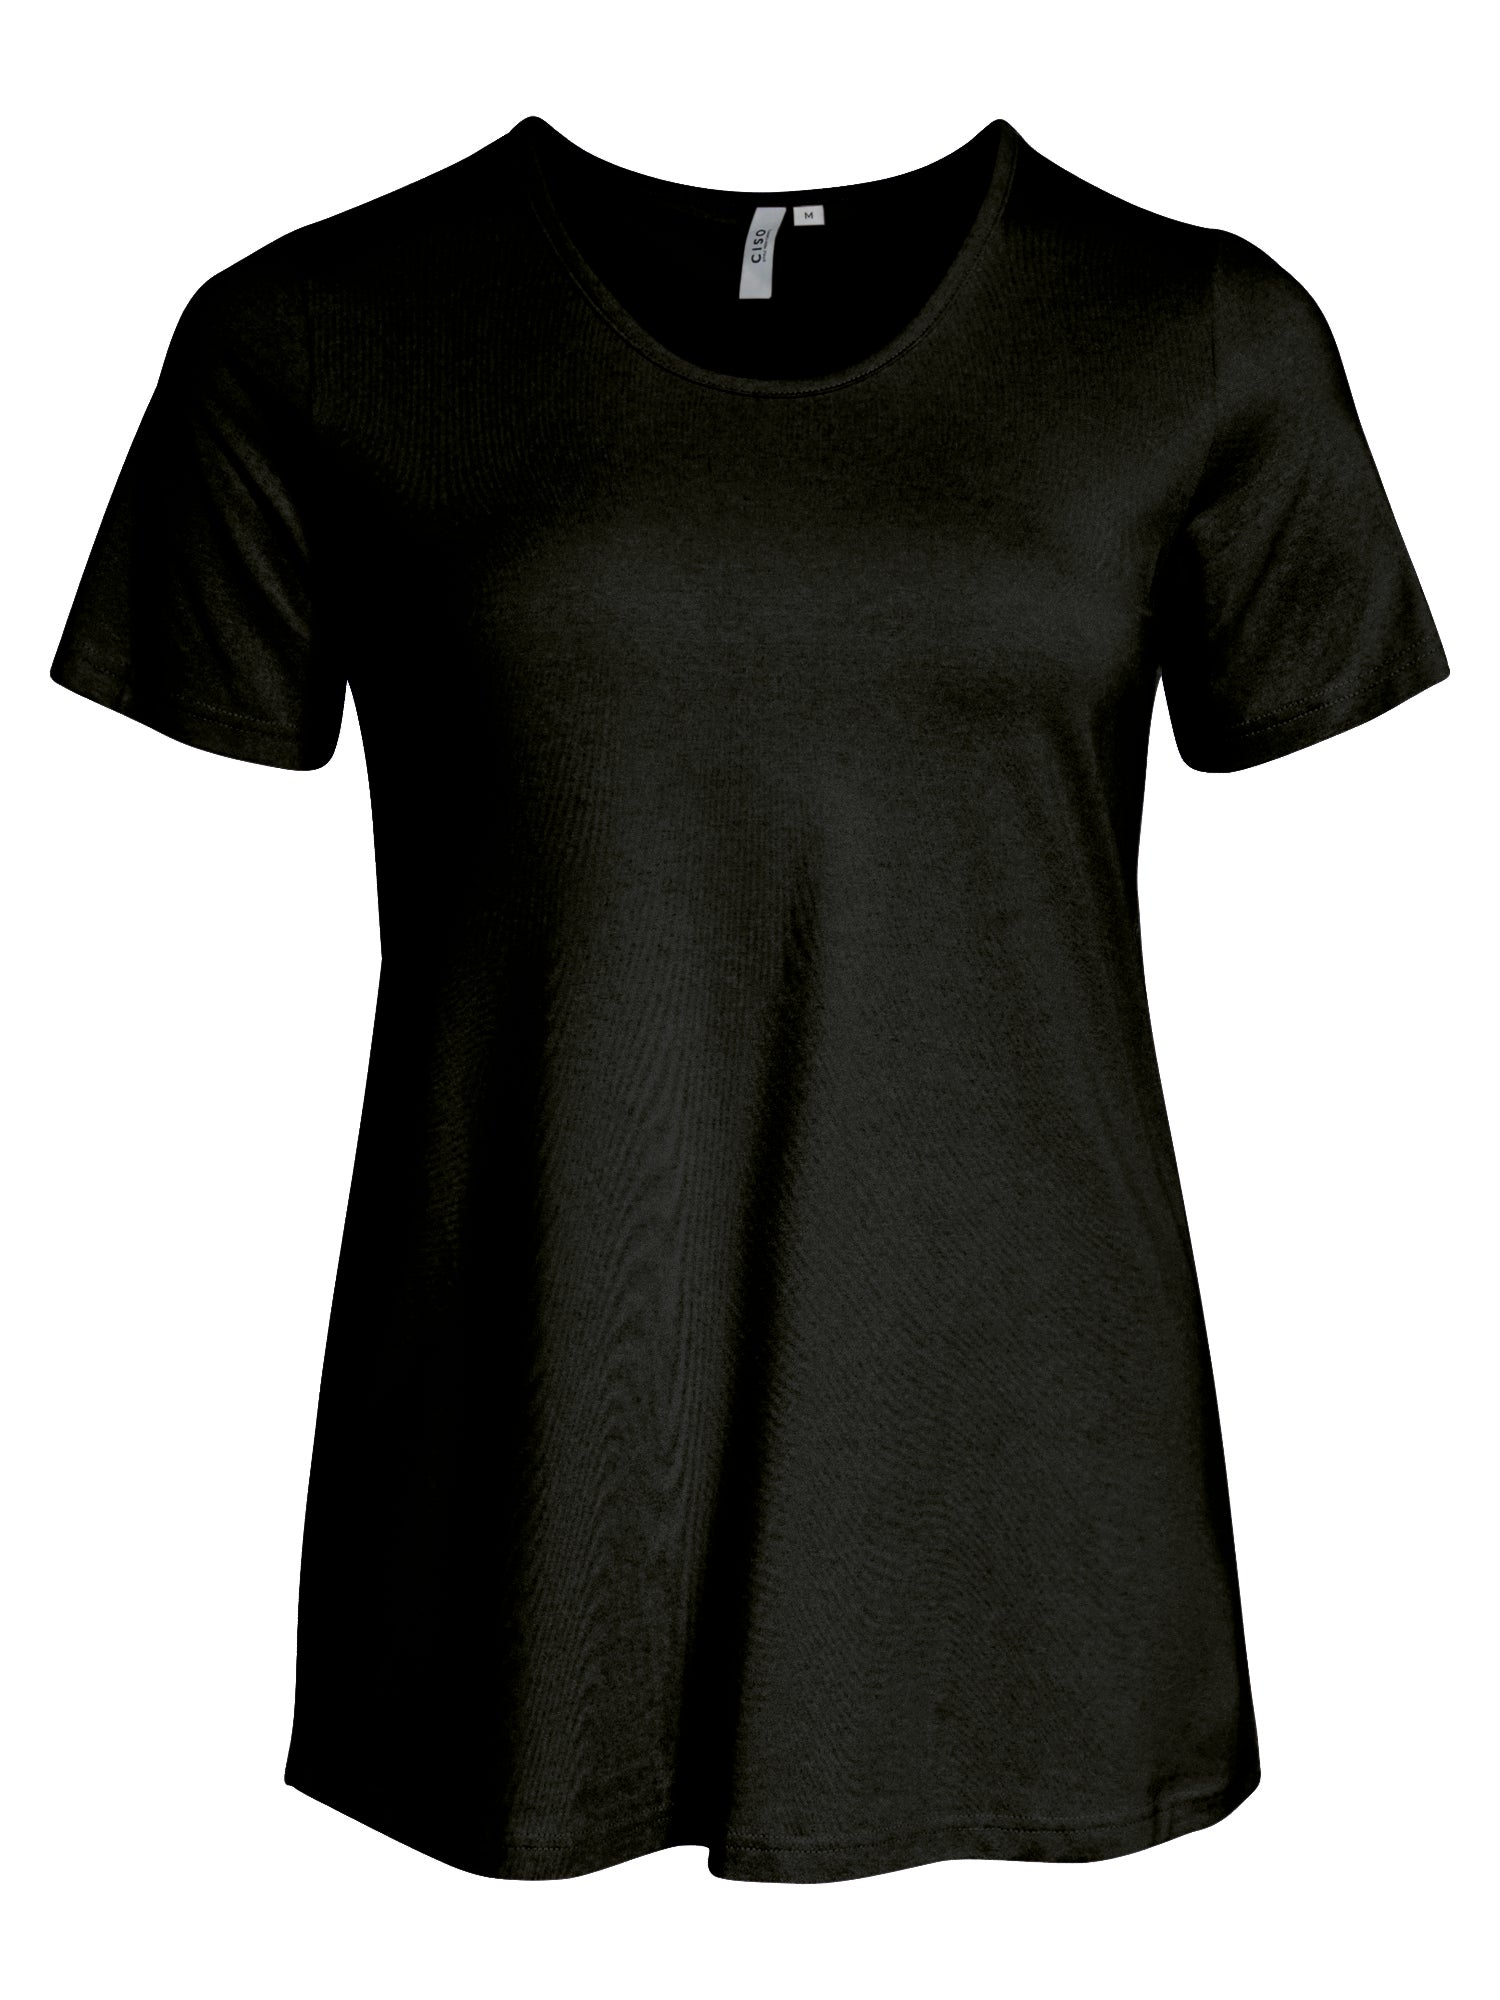 Image of   Basis T-shirt i A-facon med korte ærmer - Black